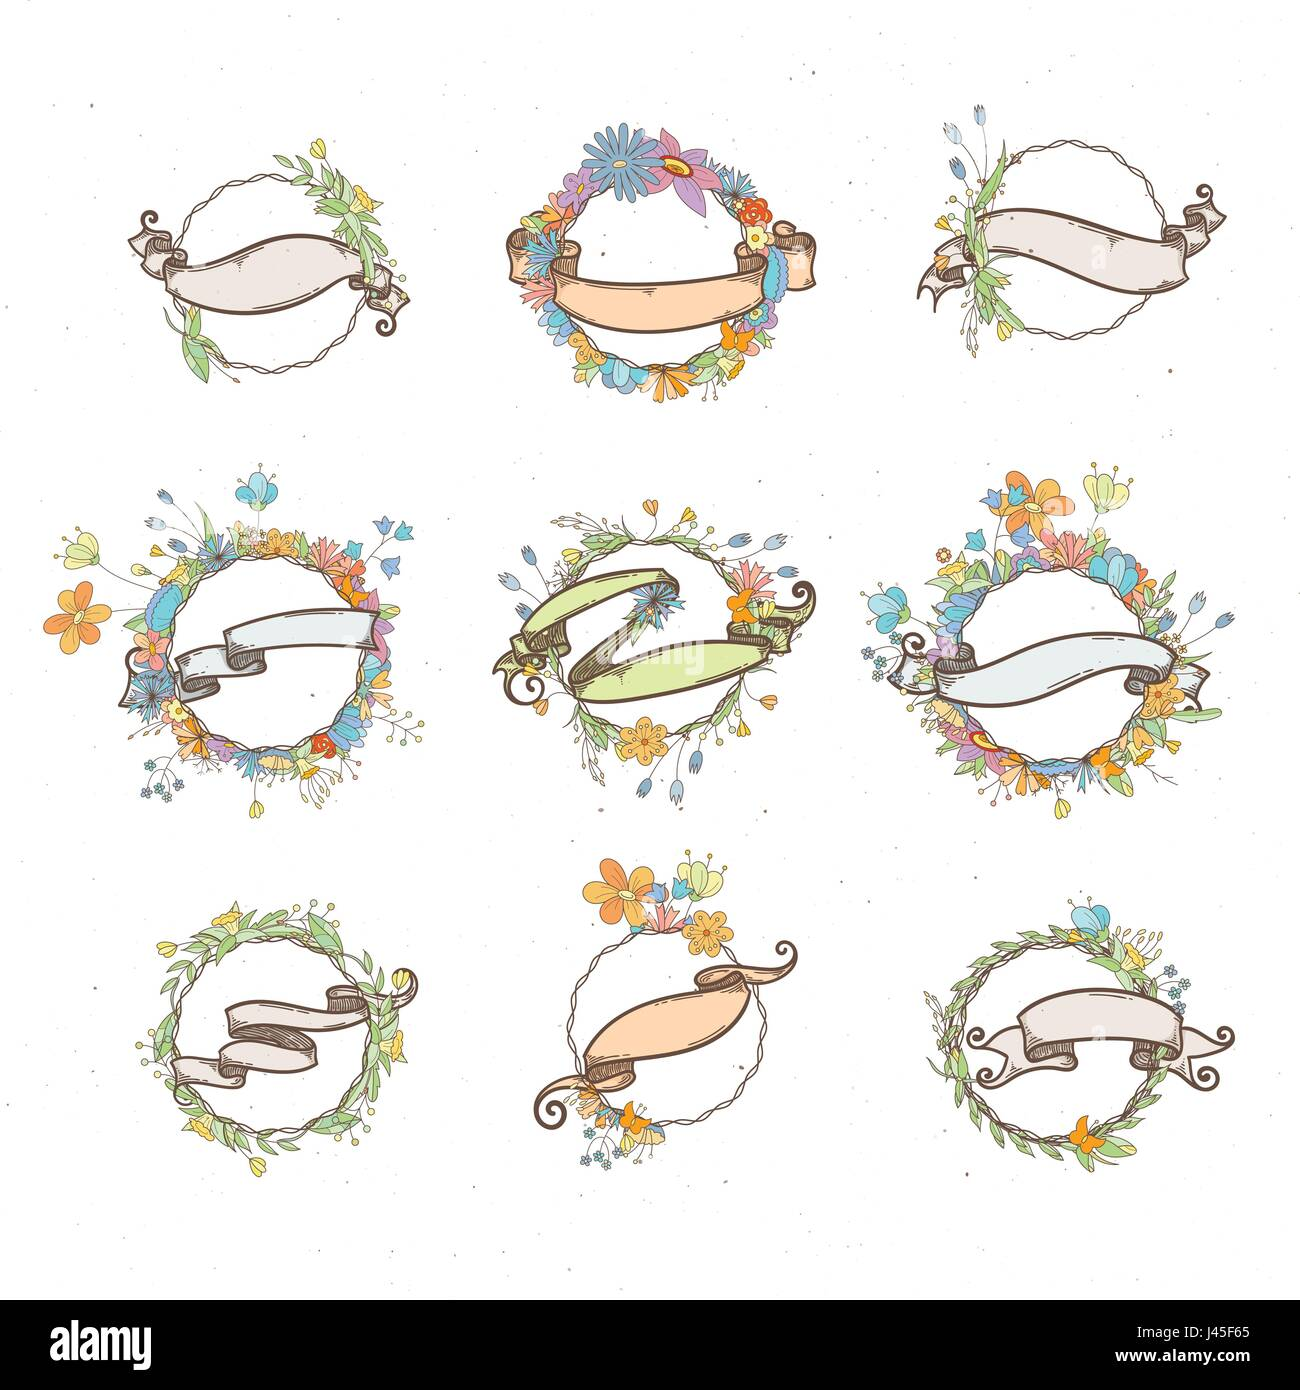 Rustic Hand Drawn Flower Elements And Ribbons Set Vector Floral Doodles Branches Flowers Laurels Frames Border Collection For Greeting Cards